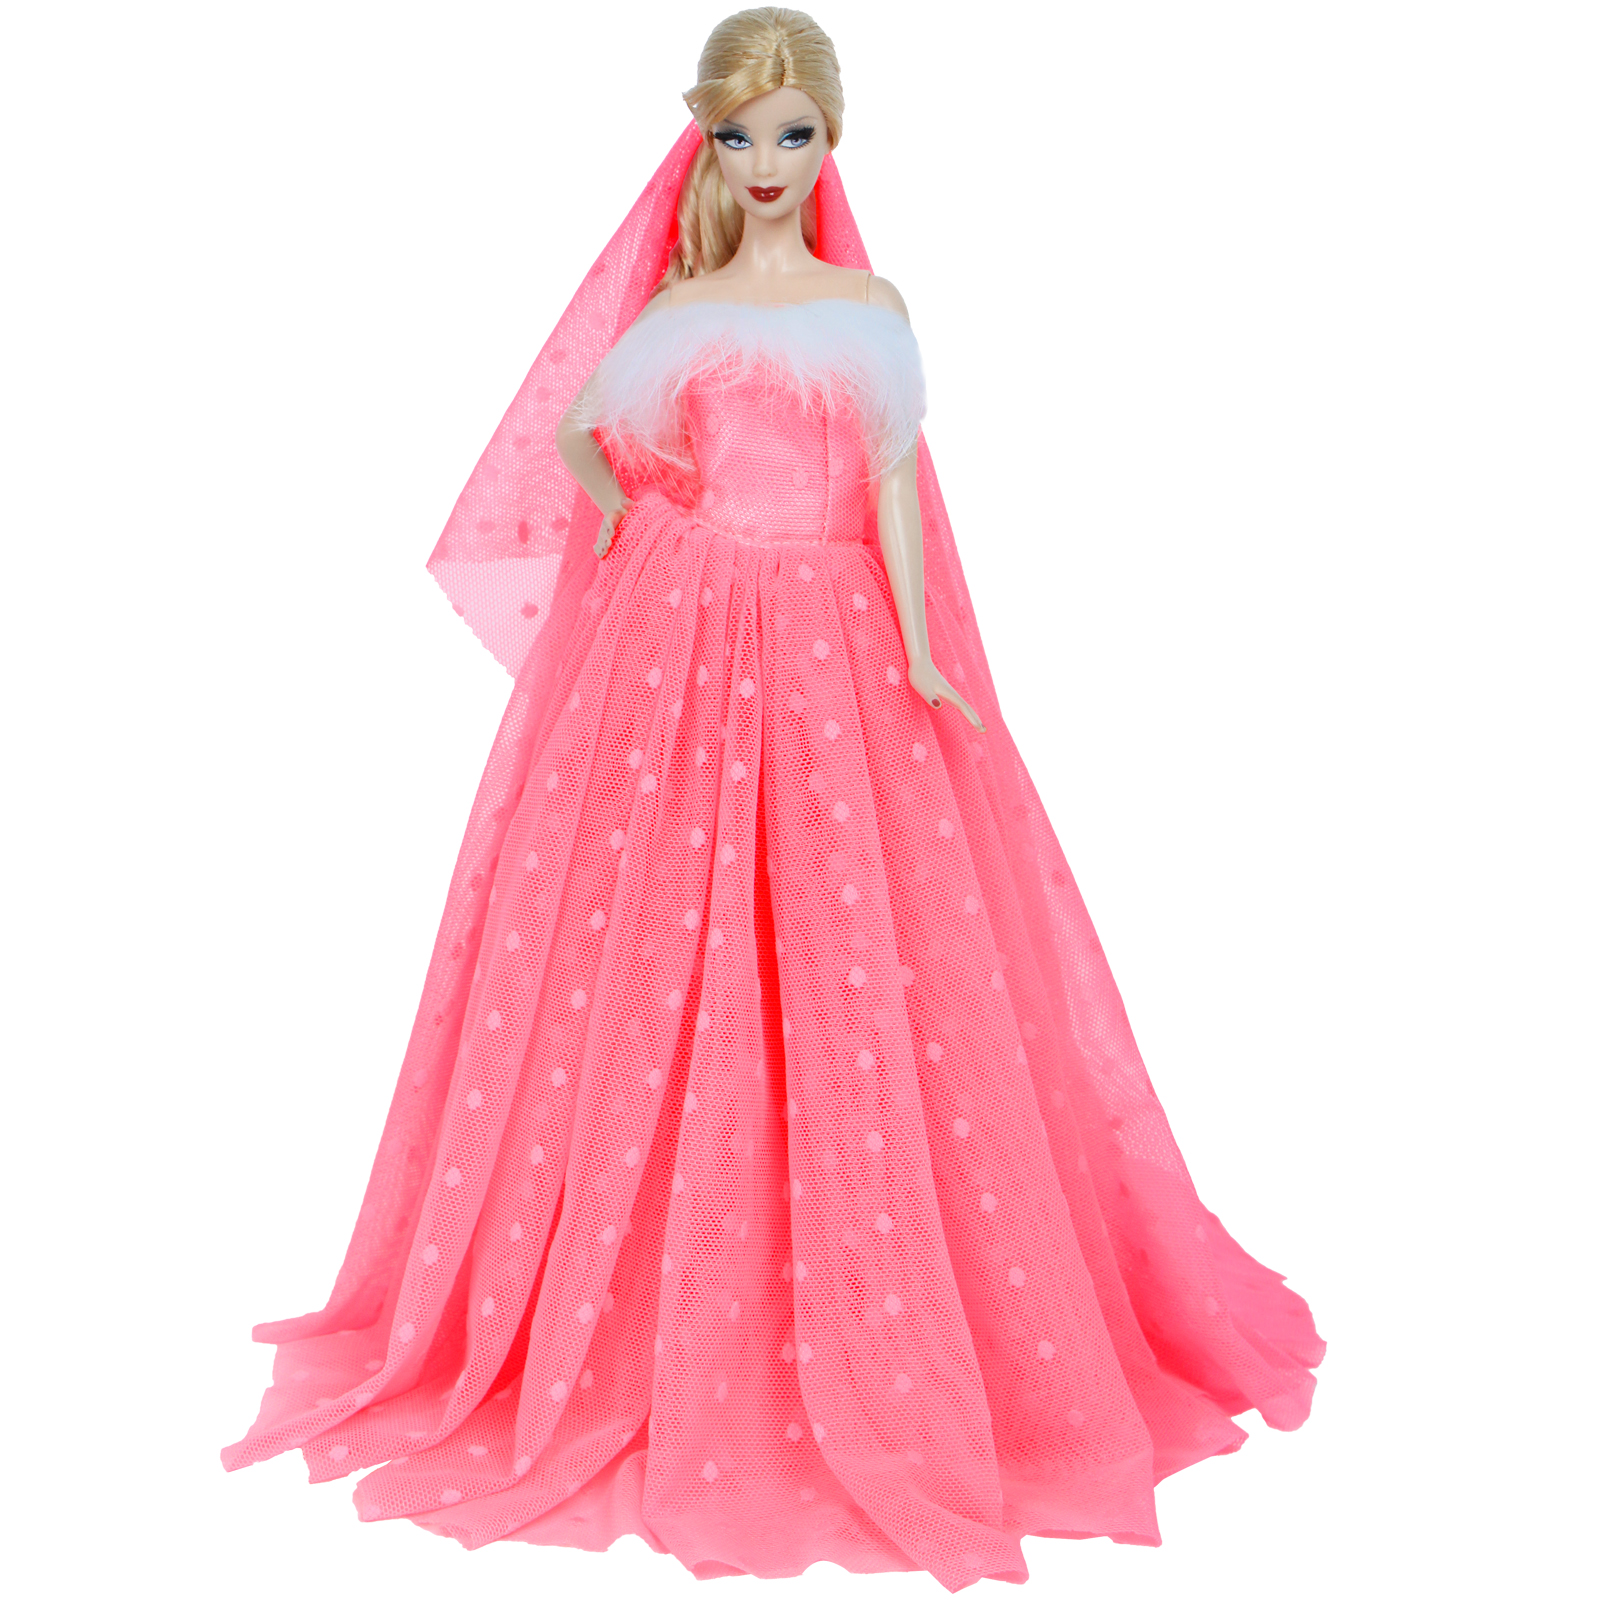 Fashion Royalty Pink Flower Party Dress Ball Gown For 11.5 inch Doll